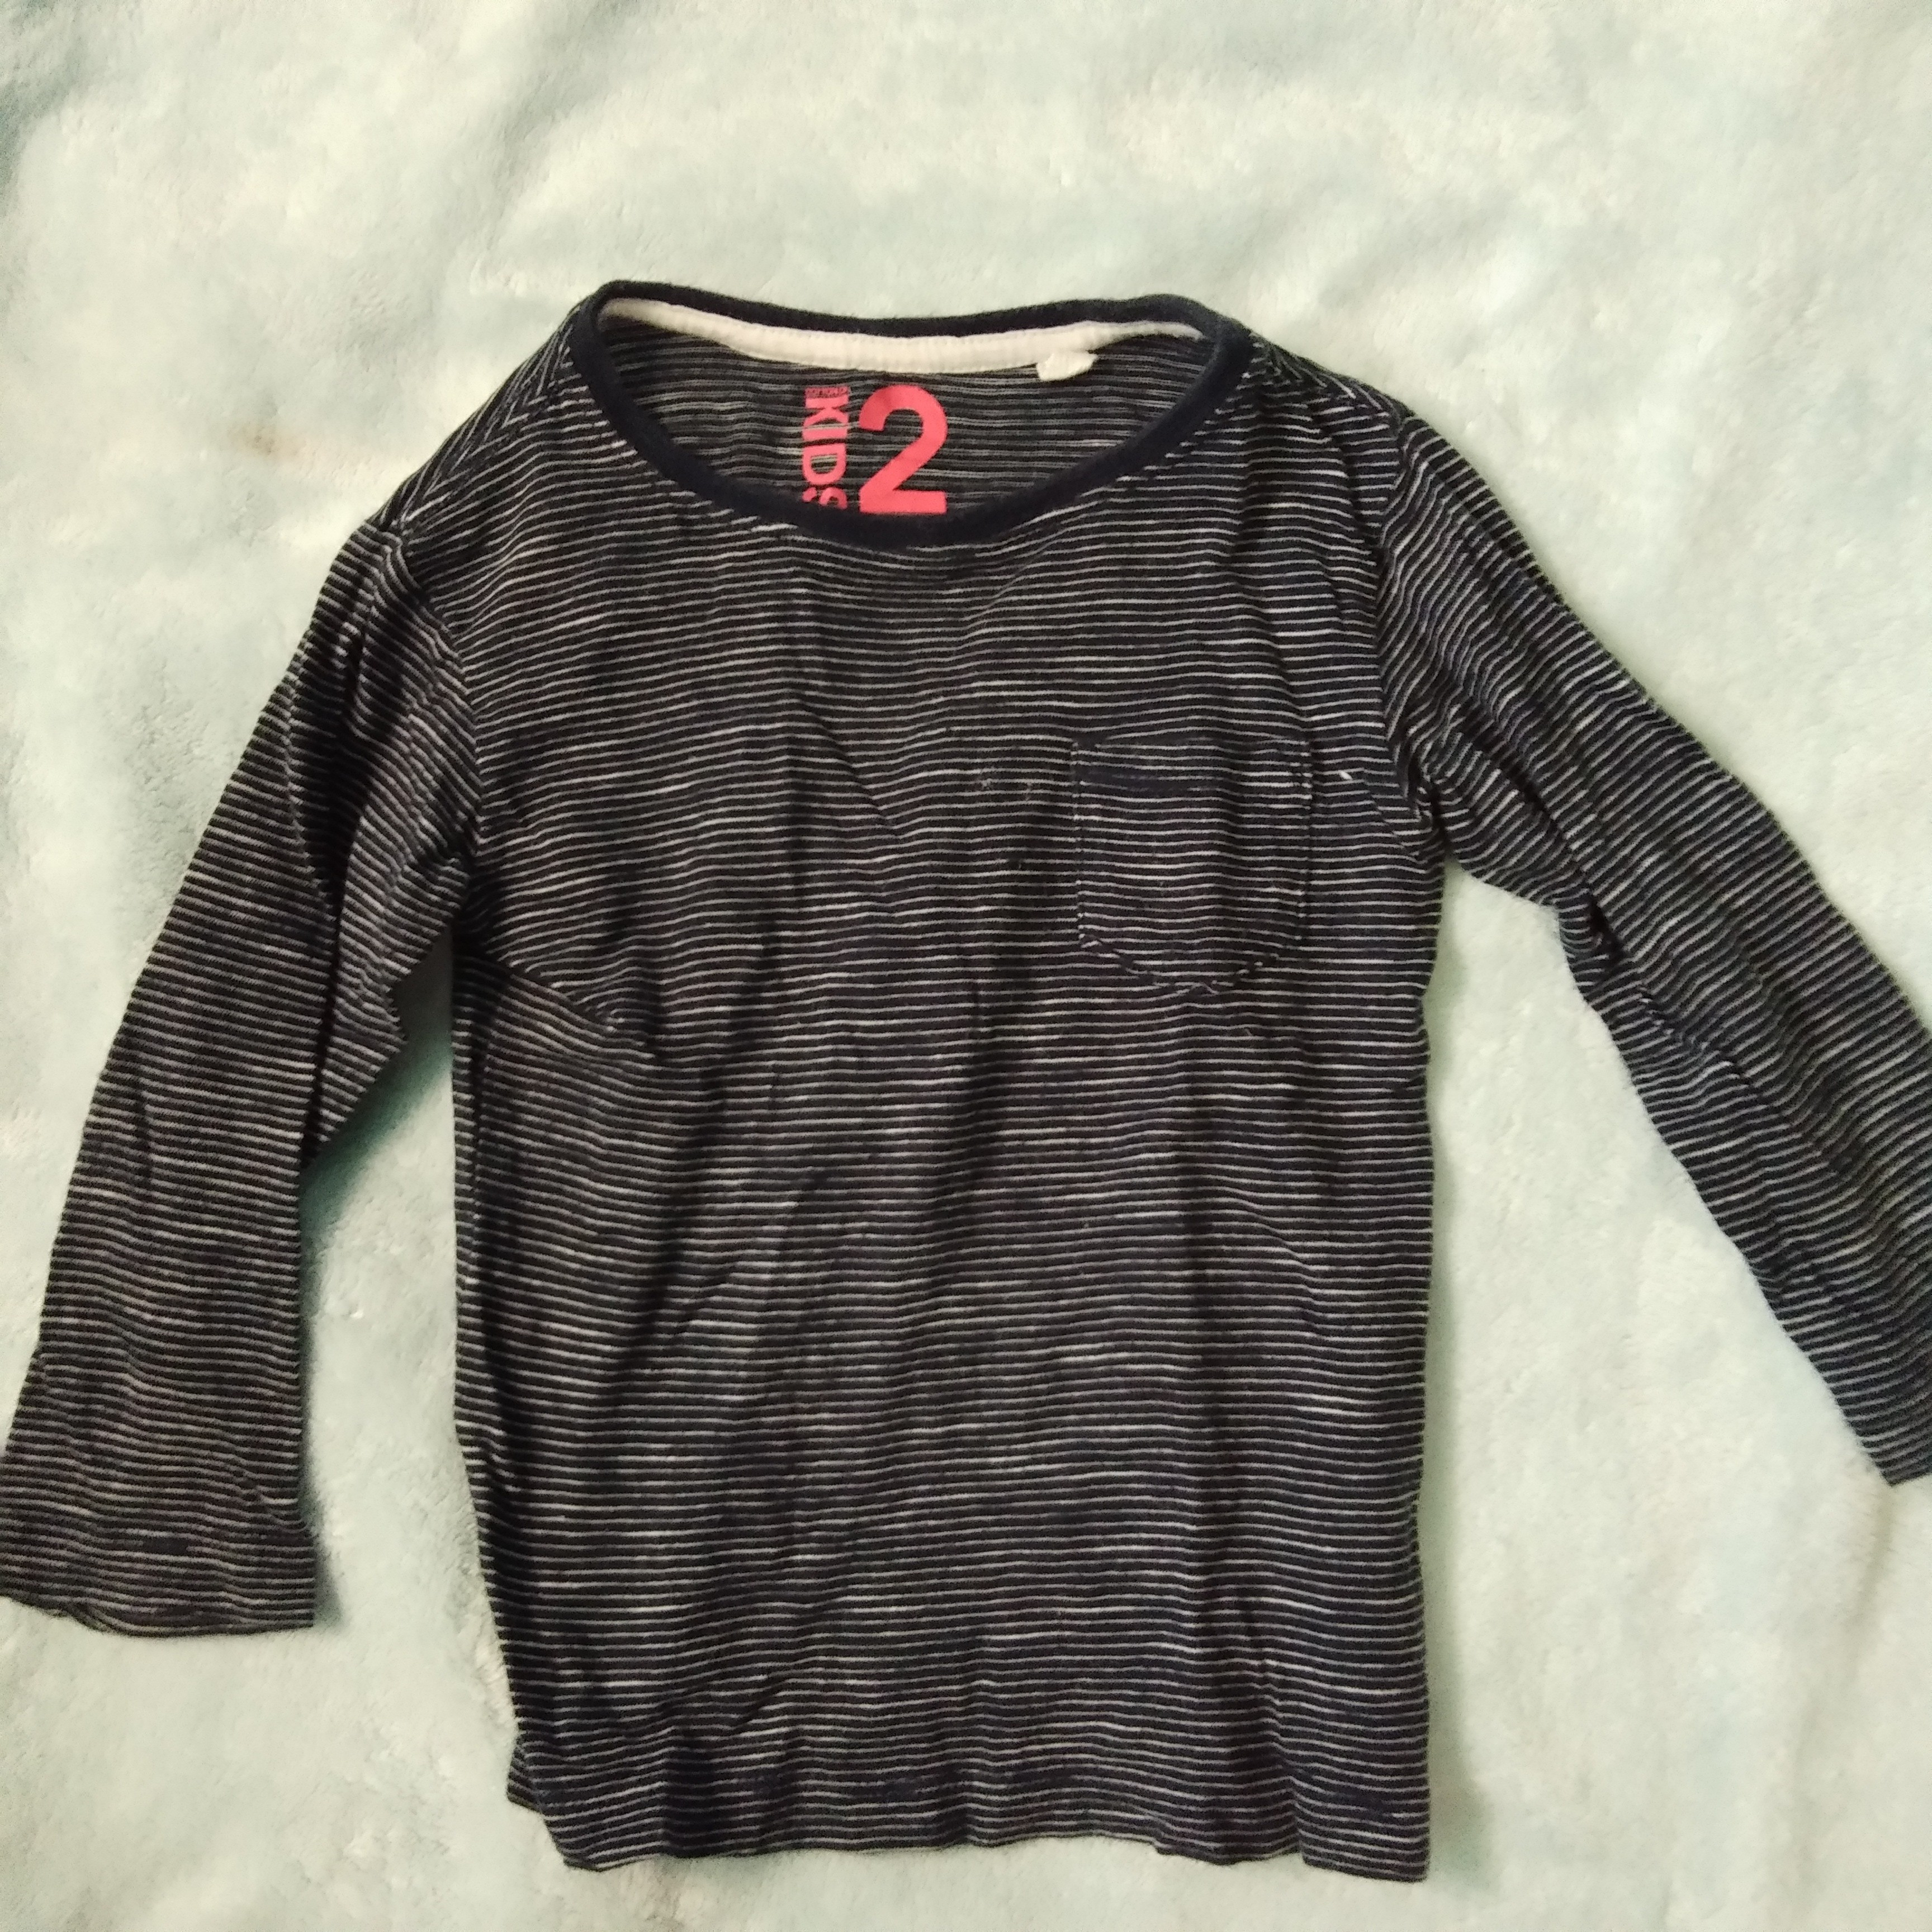 2818e2660 Cotton on stripes long sleeves, Babies & Kids, Boys' Apparel, 1 to 3 ...